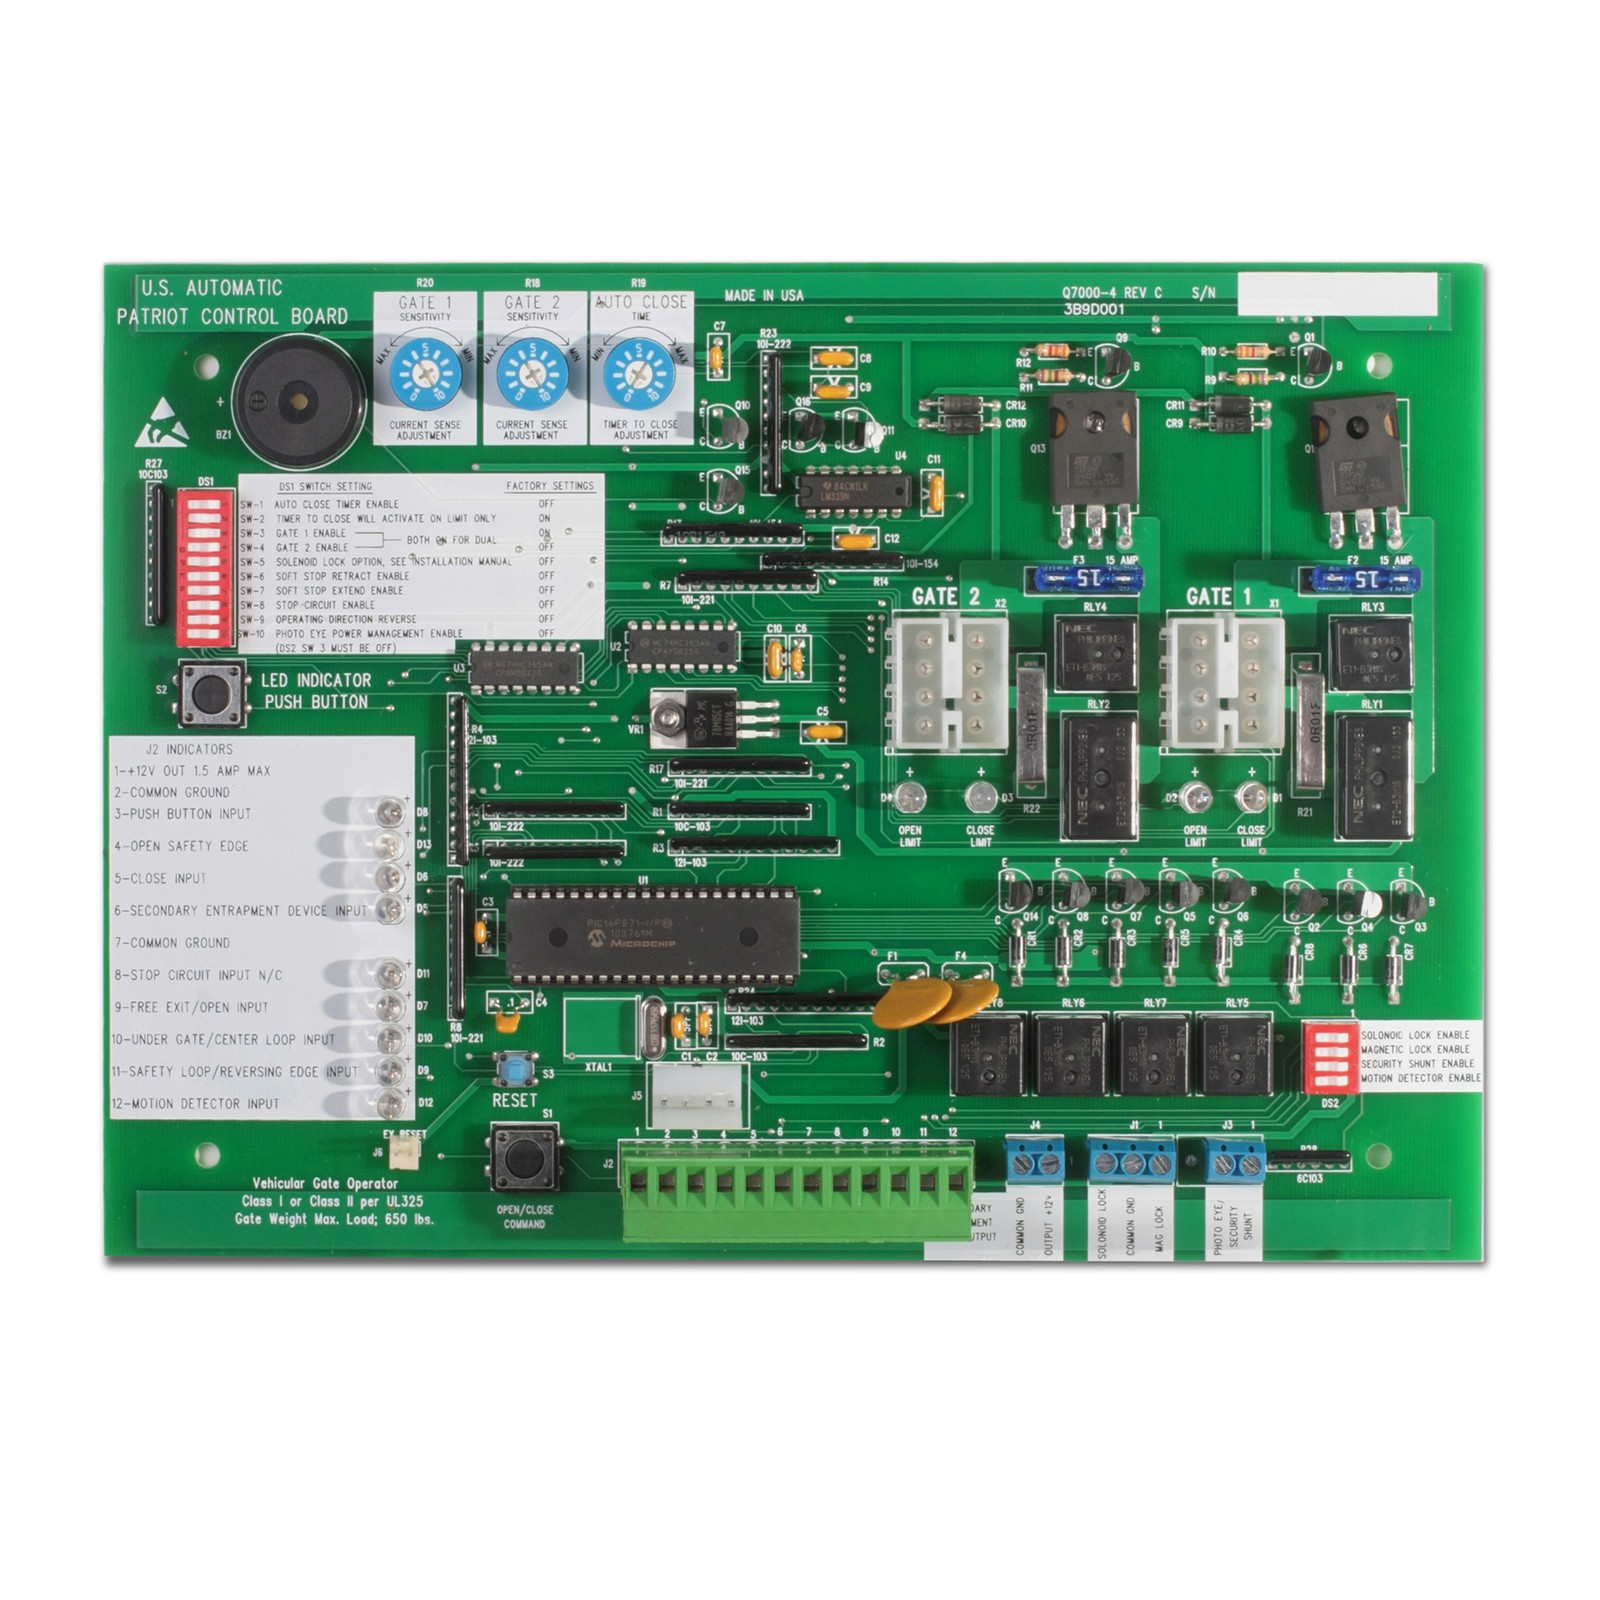 Control Board For Patriot And Rsl Usautomatic 500001 Usautomatic